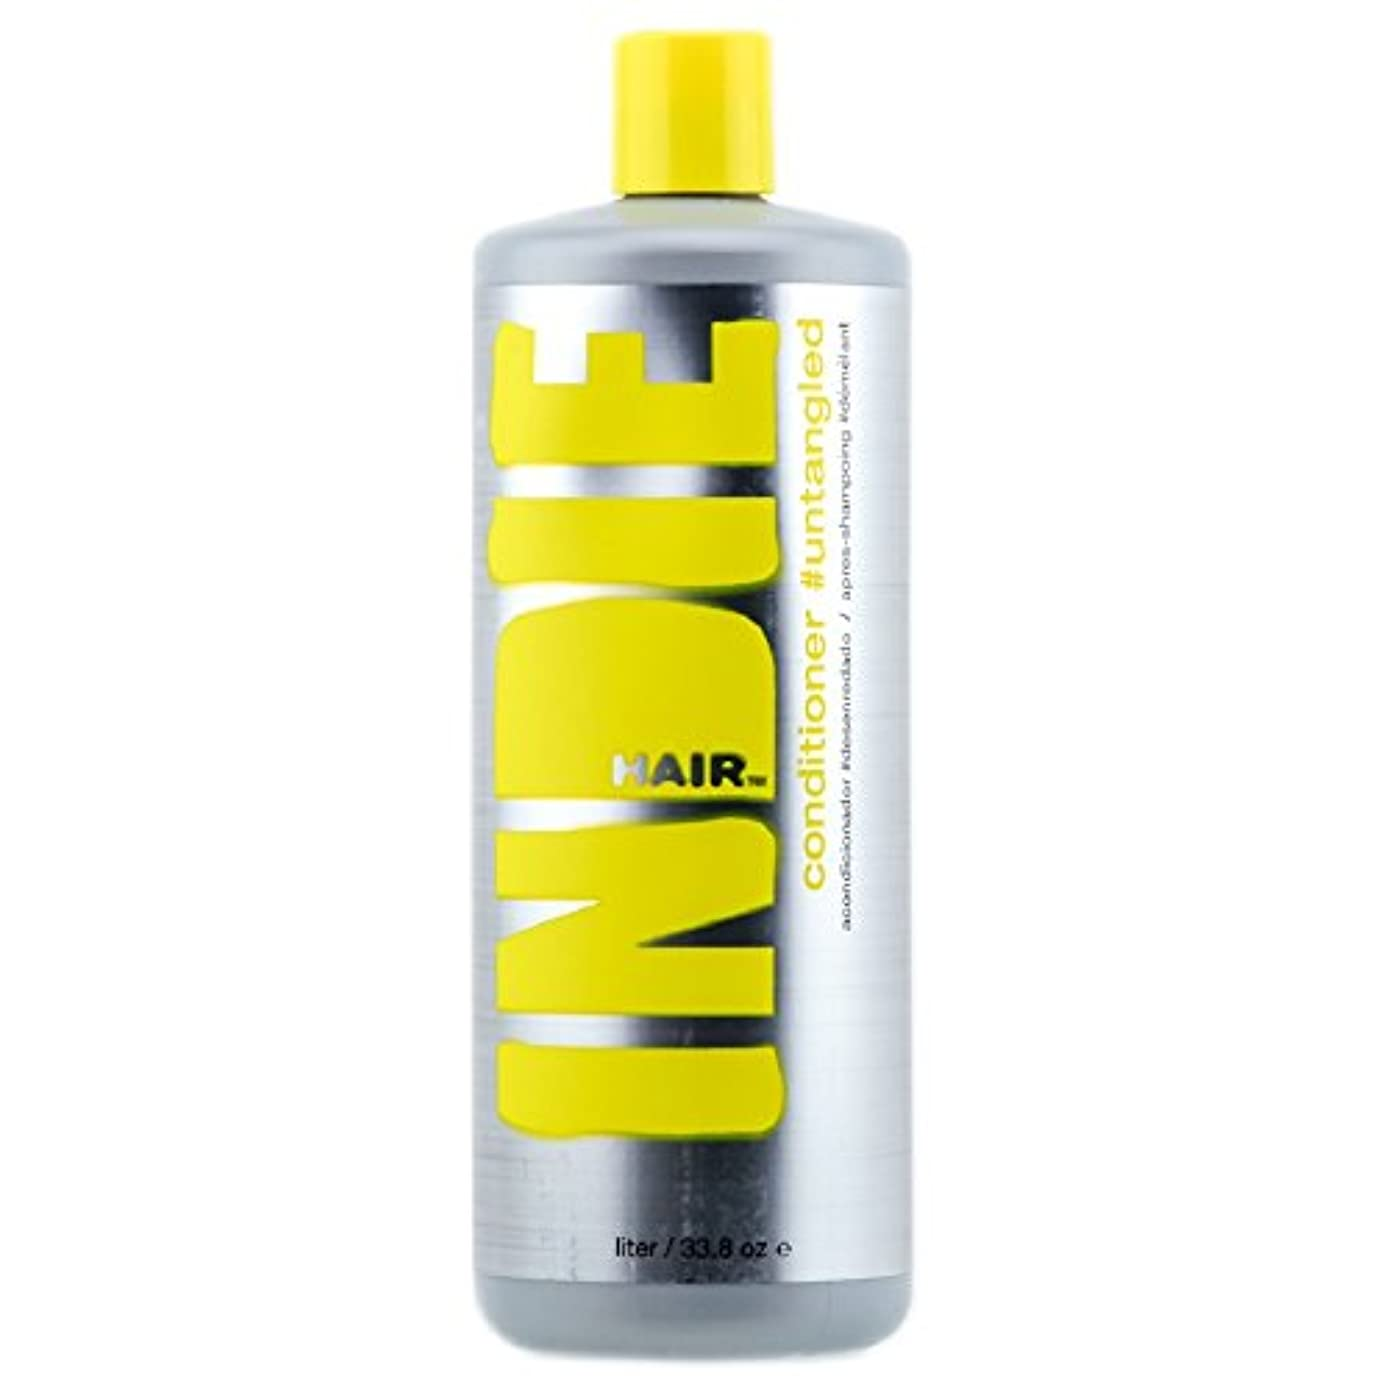 離婚契約した黒板Indie Hair 2344 Conditioner Untangled, 33.8 Fluid Ounce by Indie Hair